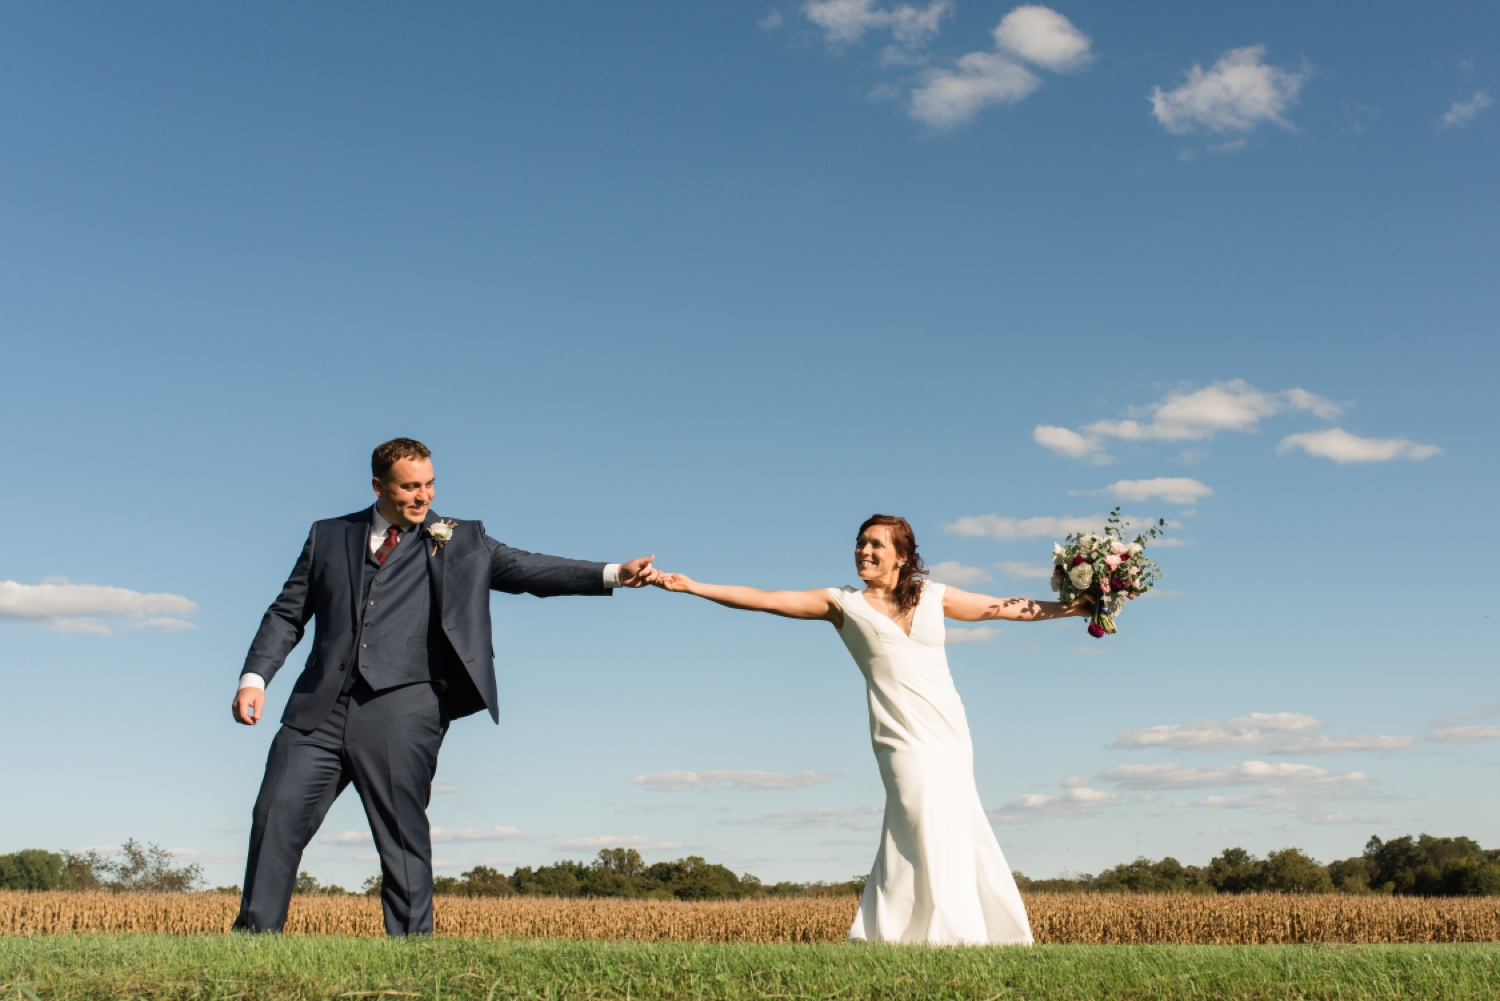 Tusculum Farm micro wedding couple photos in the field